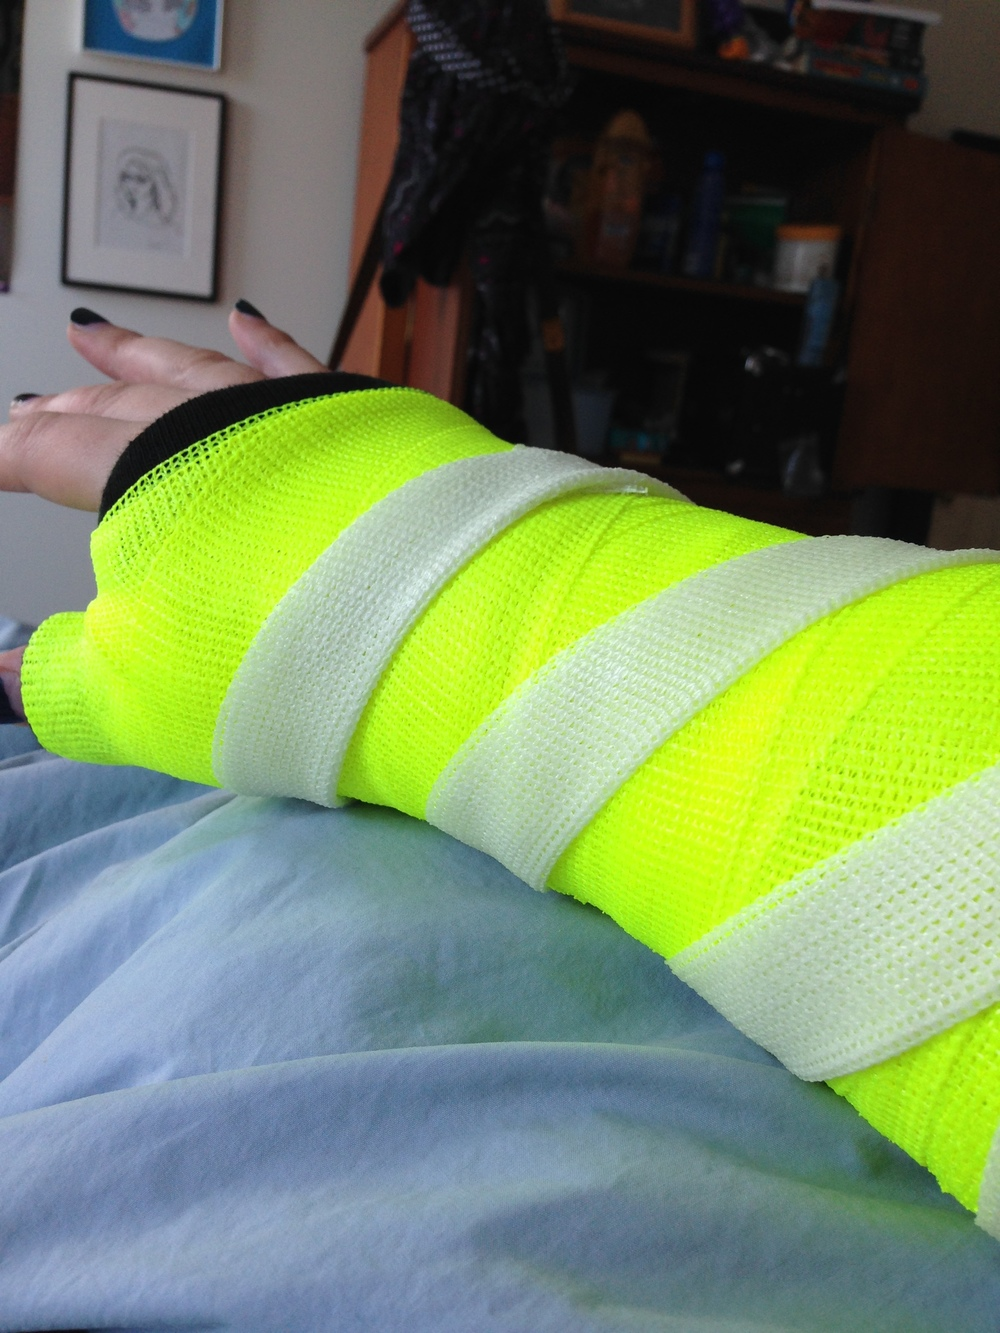 I decided on a neon yellow cast with a glow in the dark stripe.